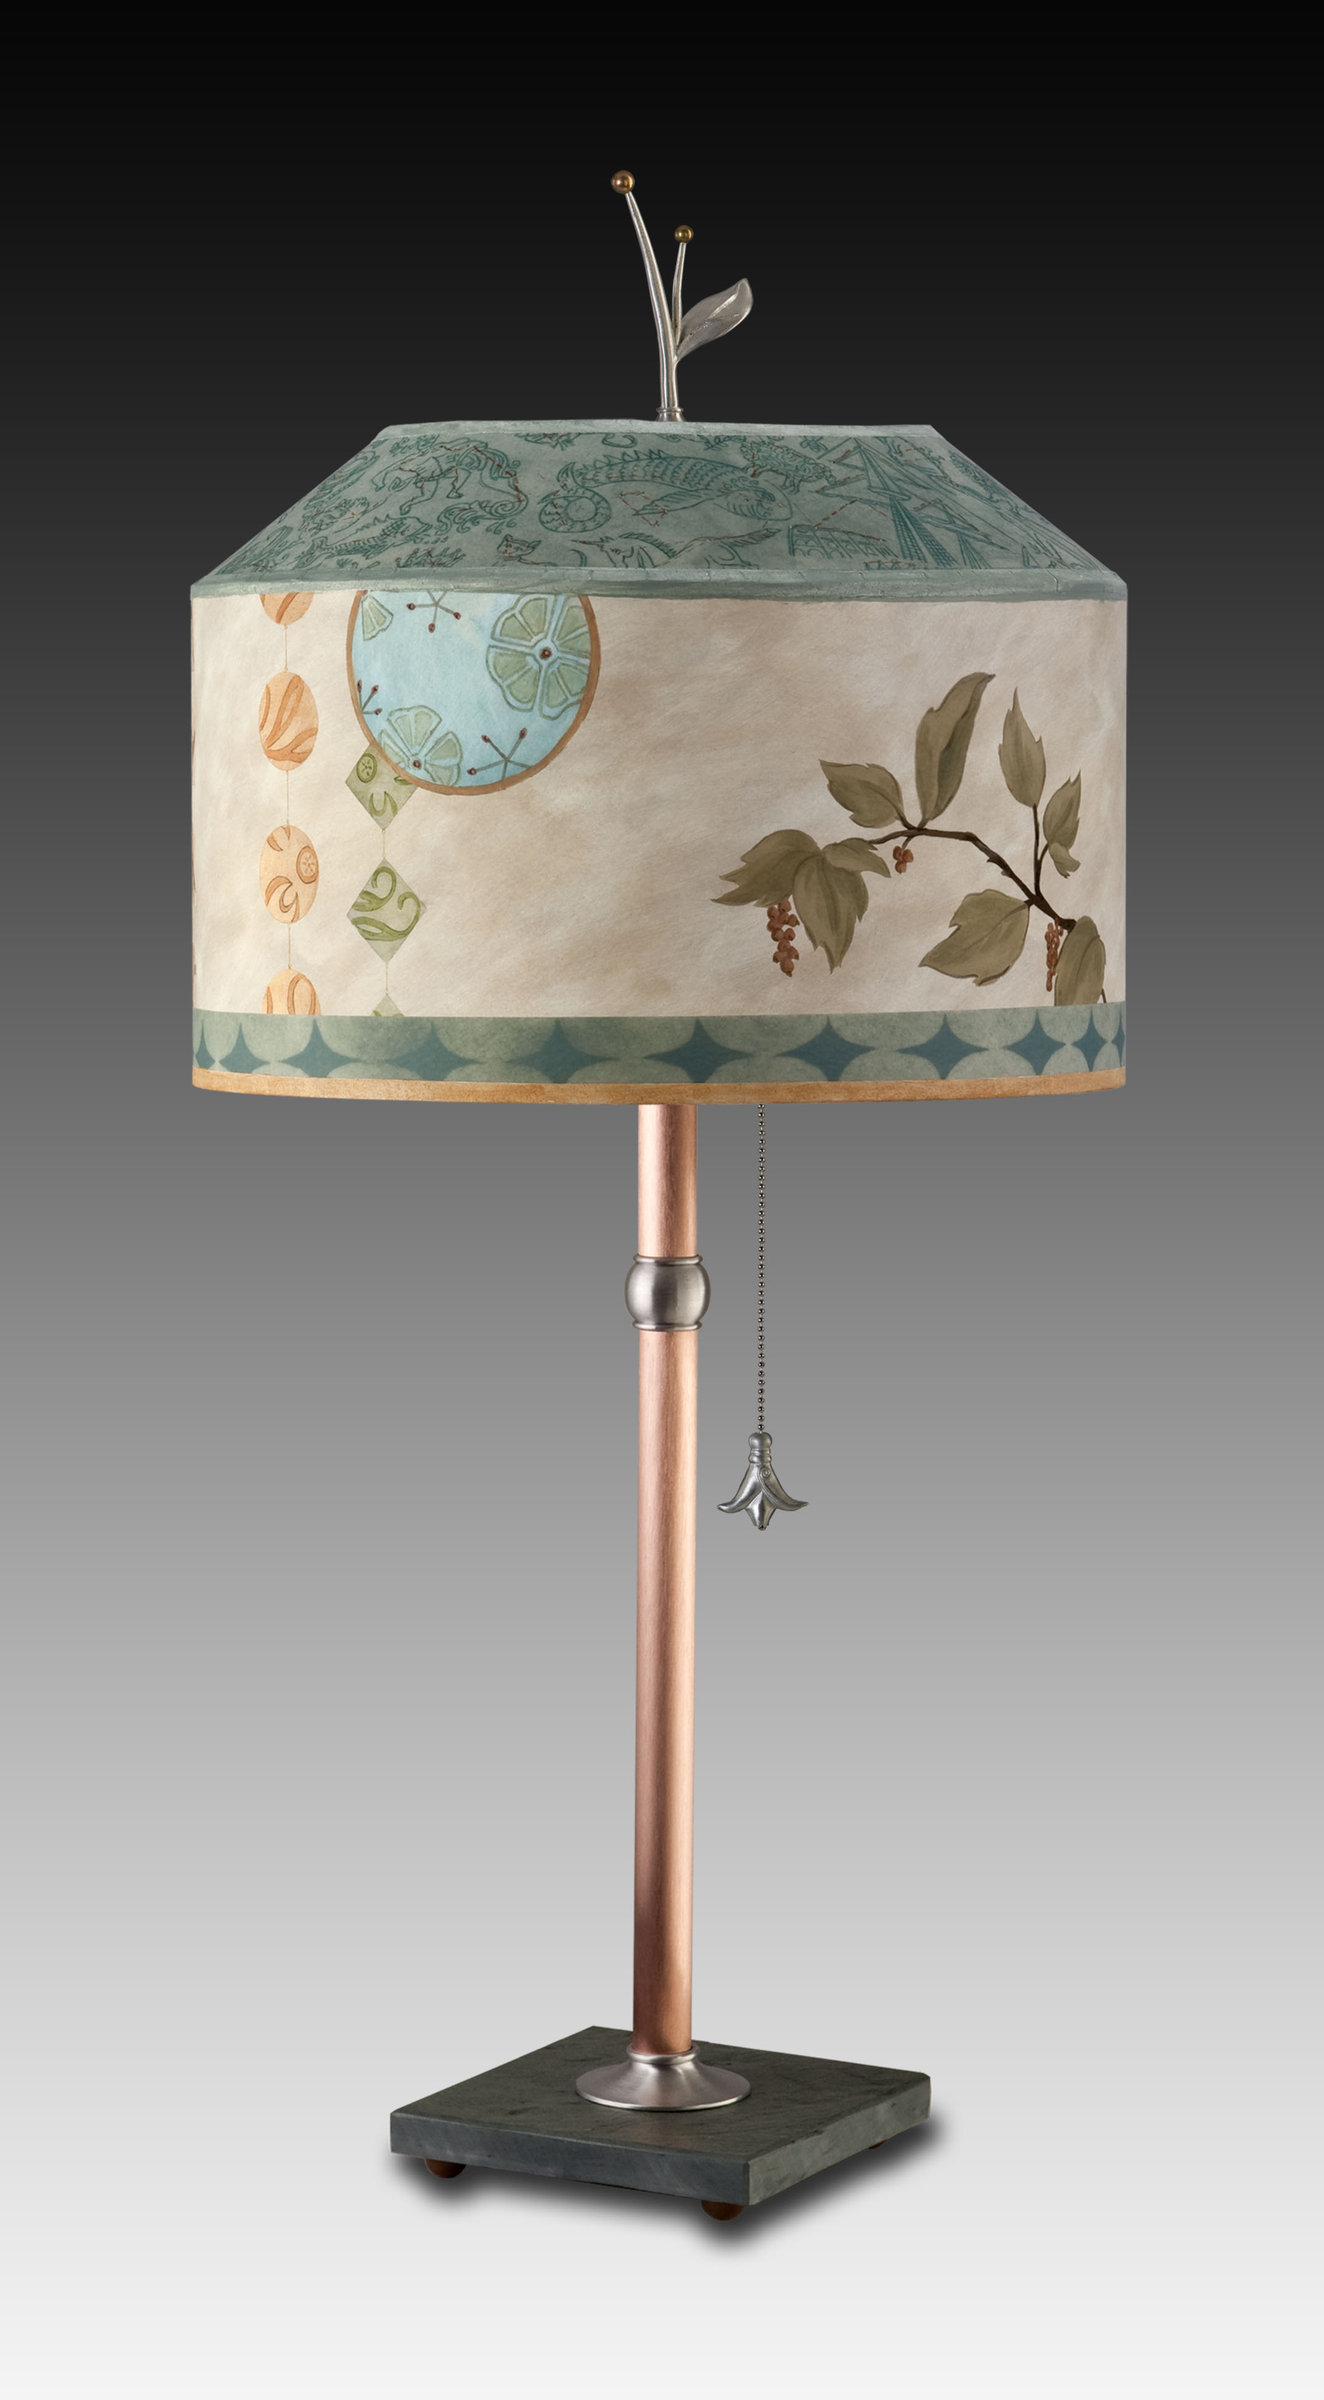 Copper Table Lamp with Medium Canopy Shade in Celestial Leaf